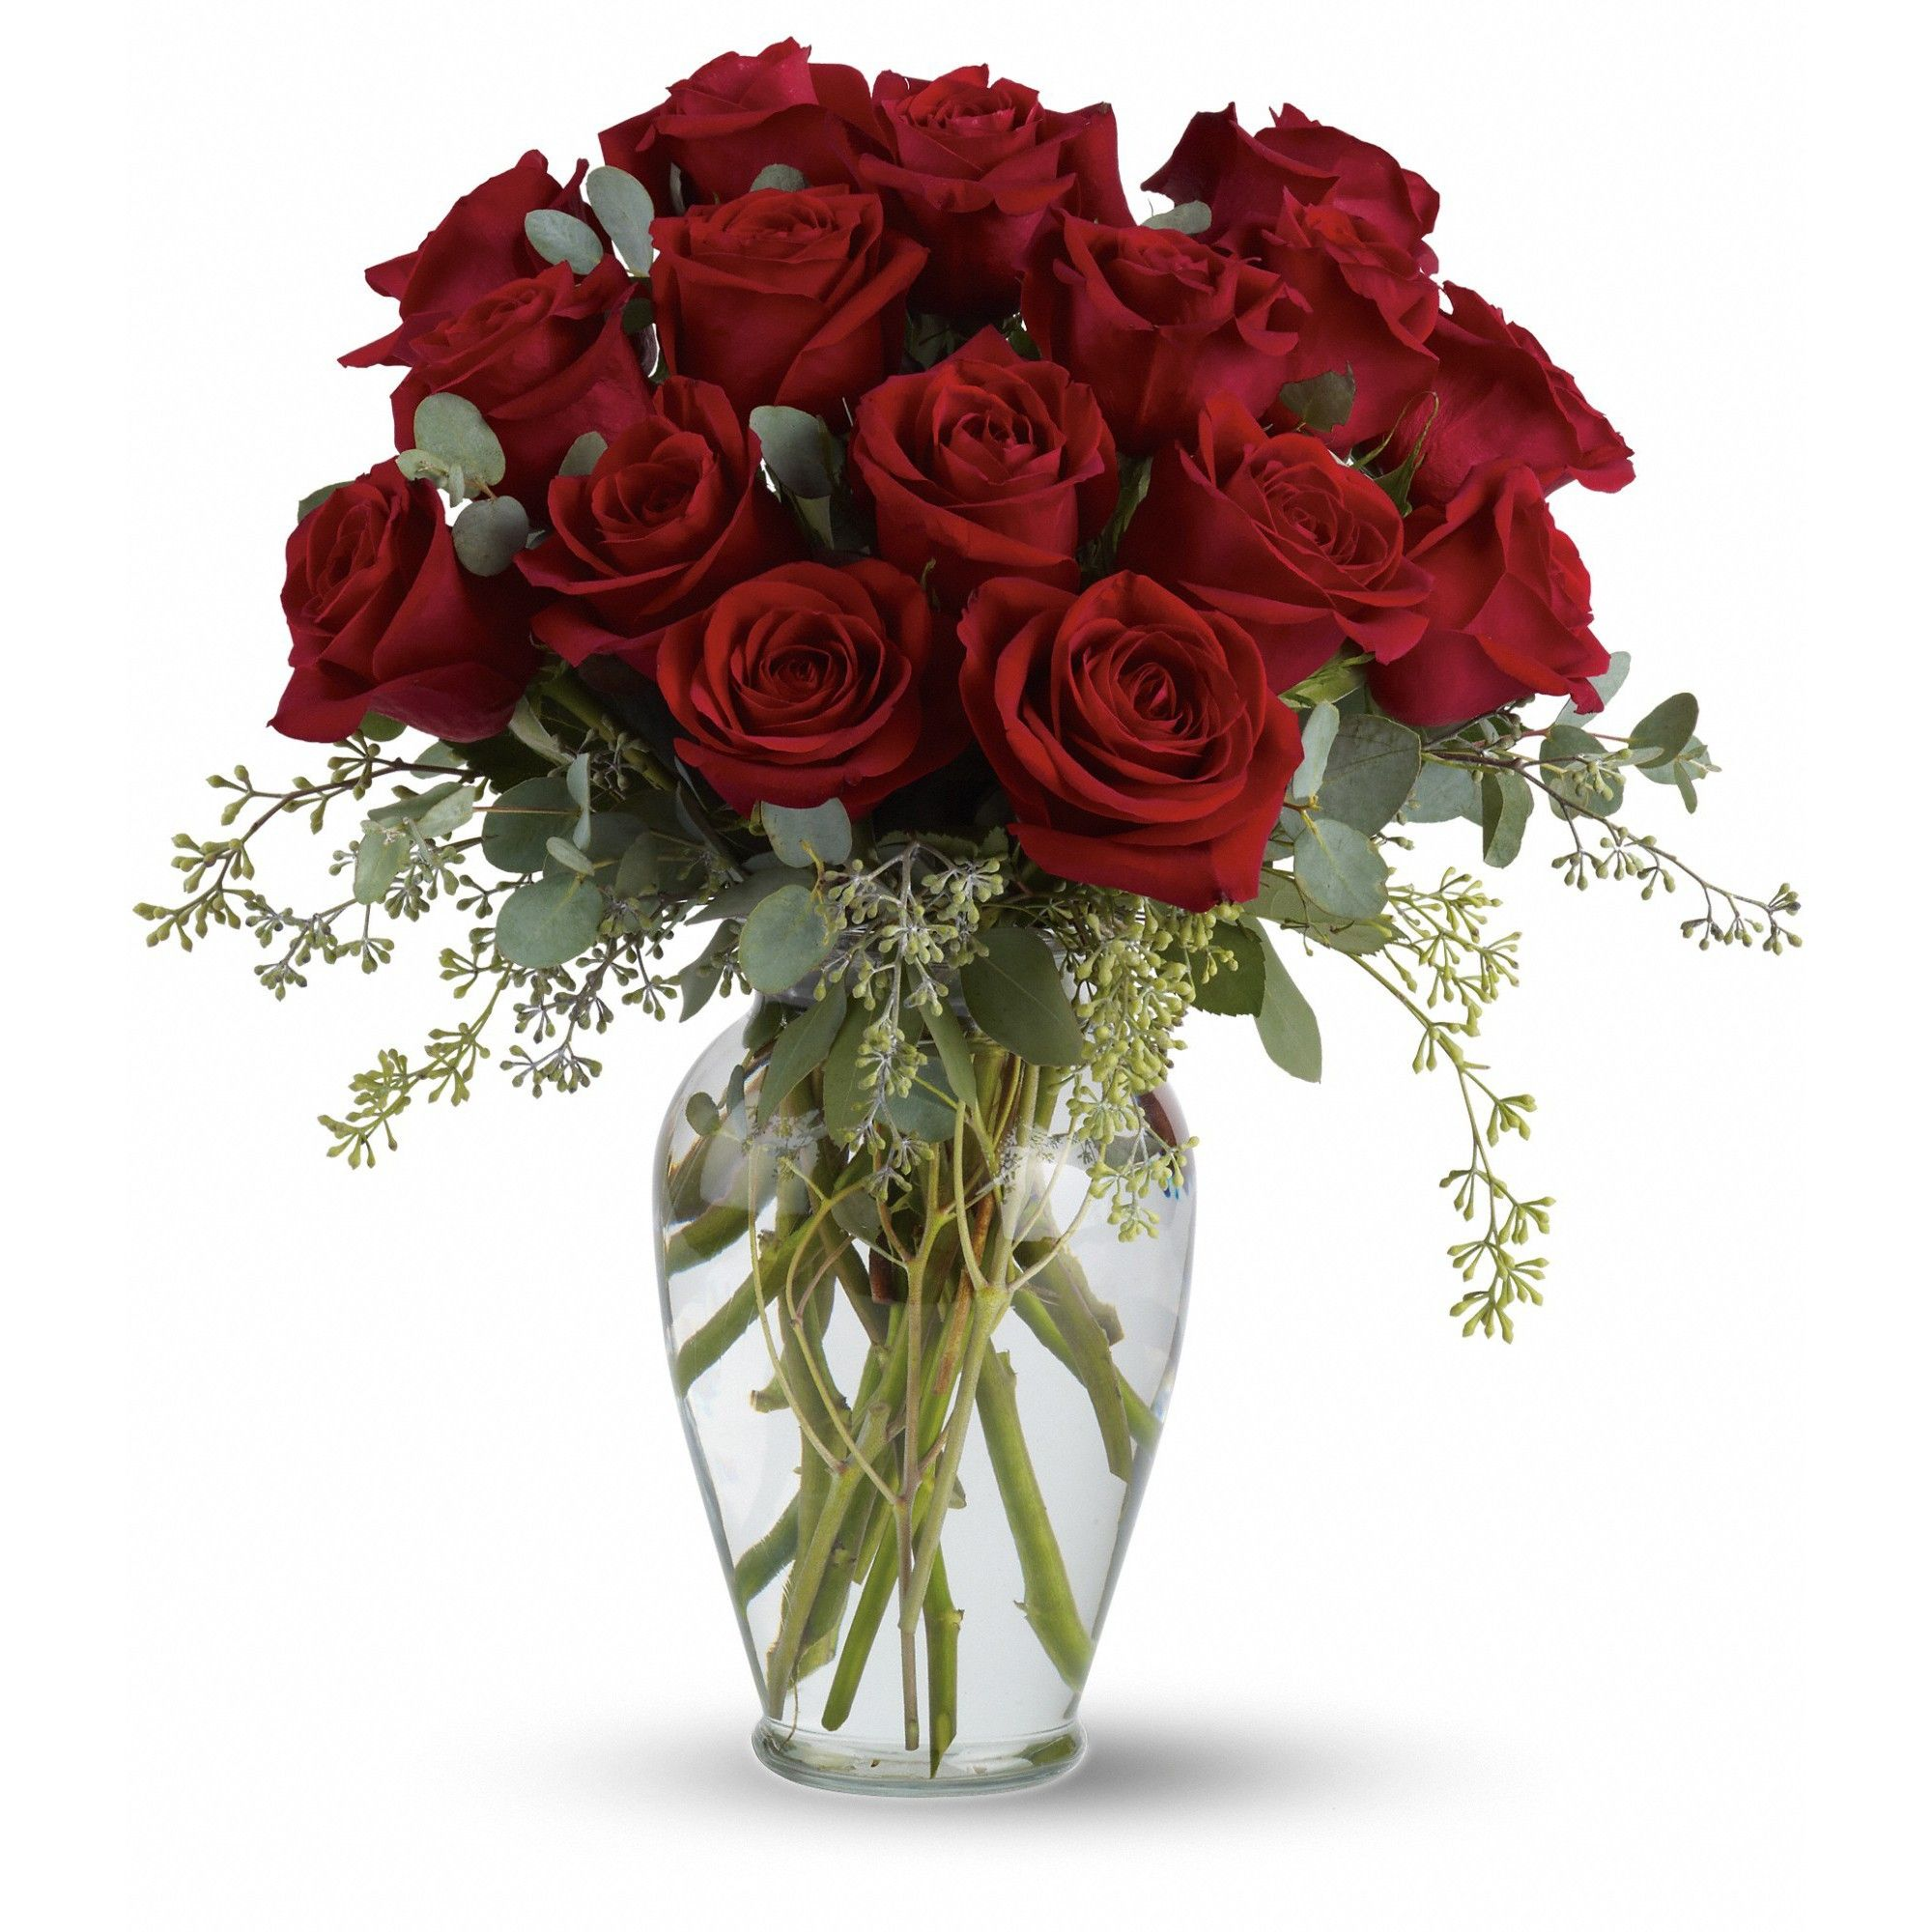 Full heart 16 premium red roses by teleflora valentines full heart 16 premium red roses by teleflora flower delivery valentine gifts valentines izmirmasajfo